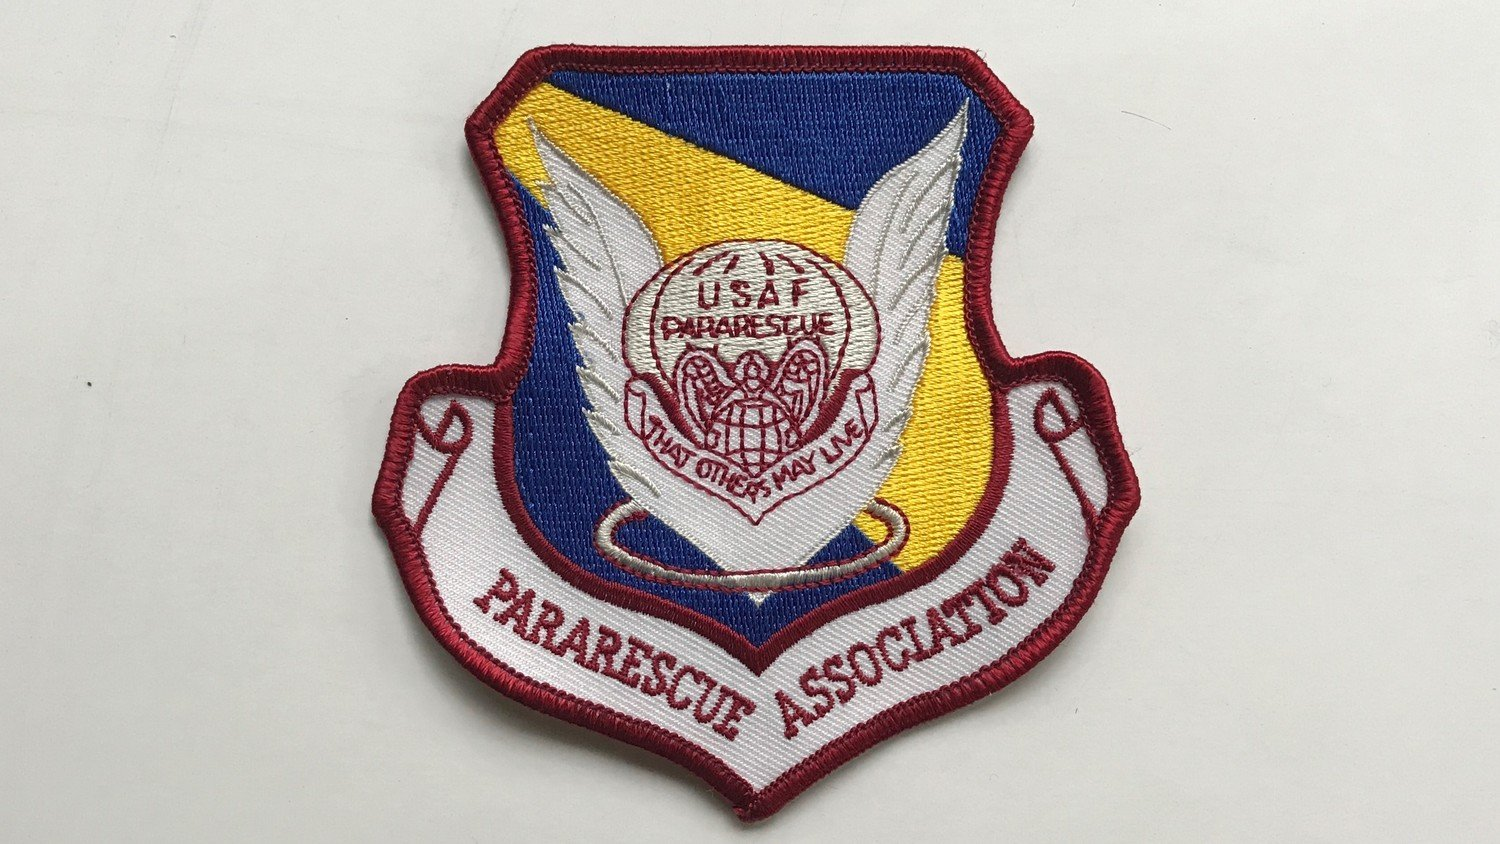 pja/ PJA Patch - PJA 4 Inch, 5 color embroidered patch